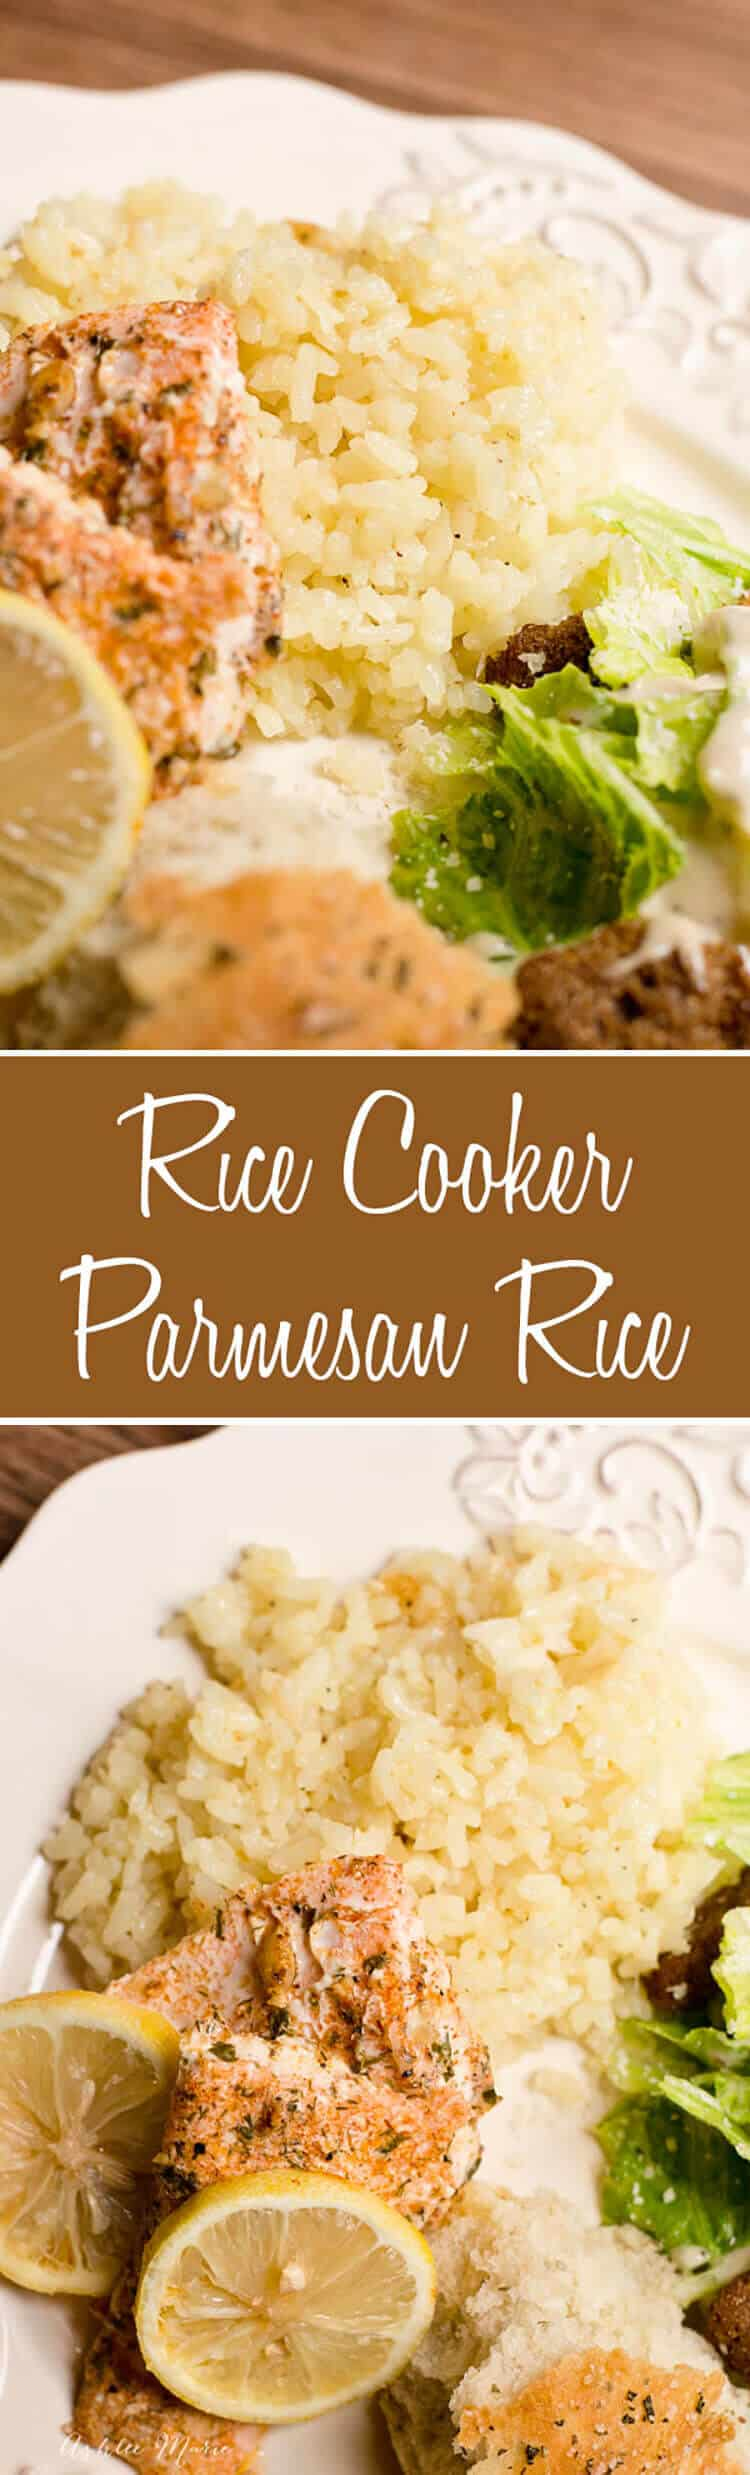 this easy and delicious parmesan rice is cheesy goodness made with butter, garlic, and onions